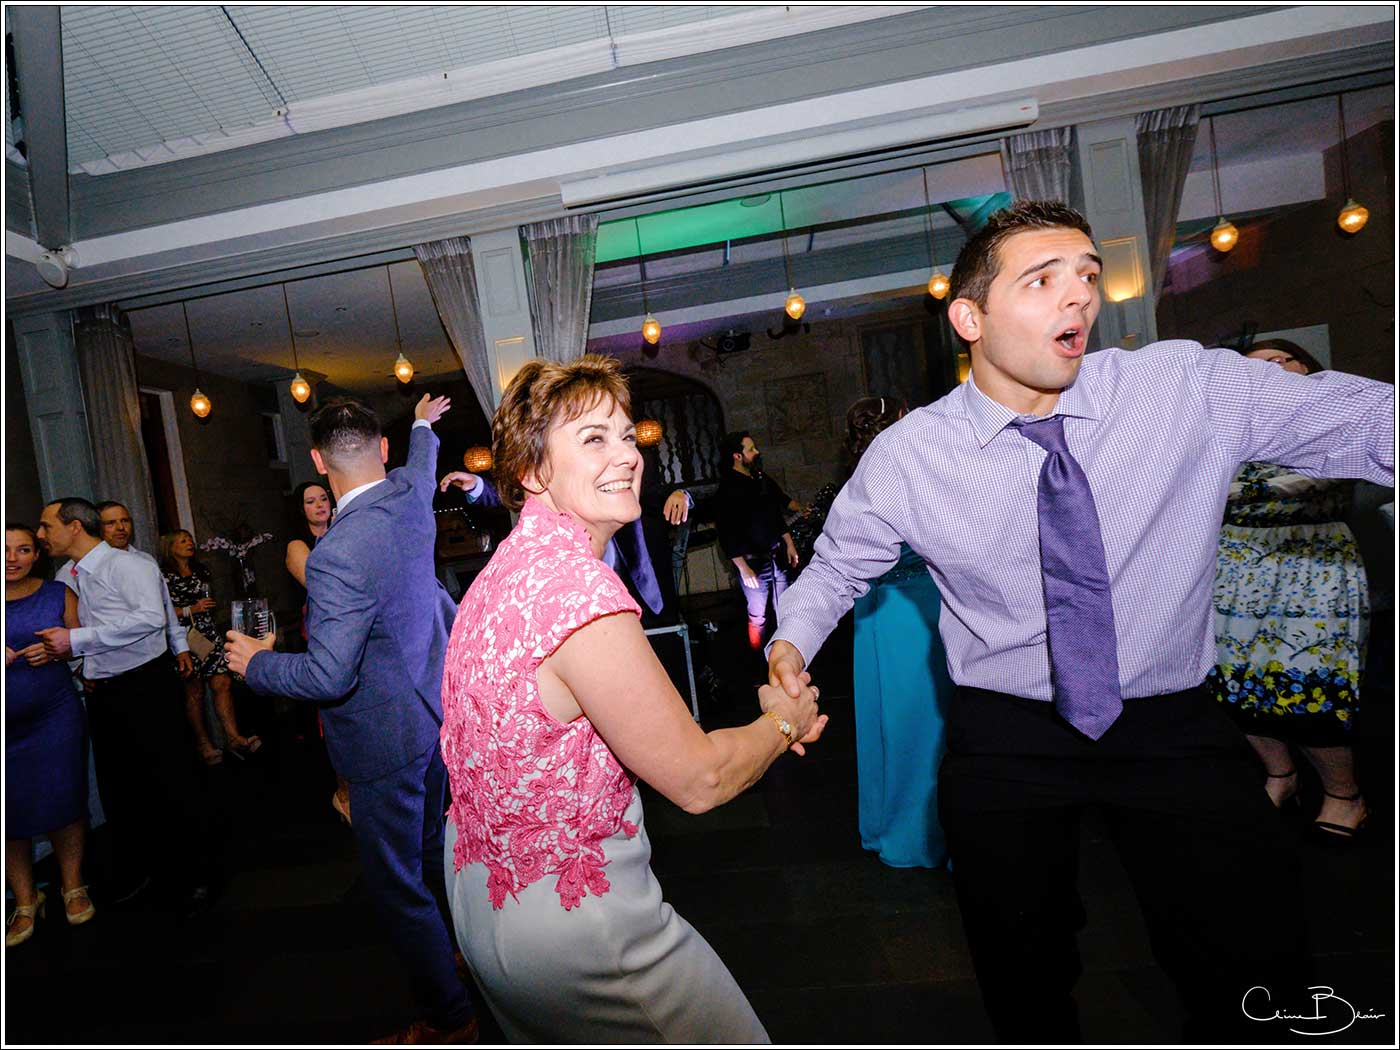 Groom's mother on dance floor-by Hampton manor wedding photographer Clive Blair Photography